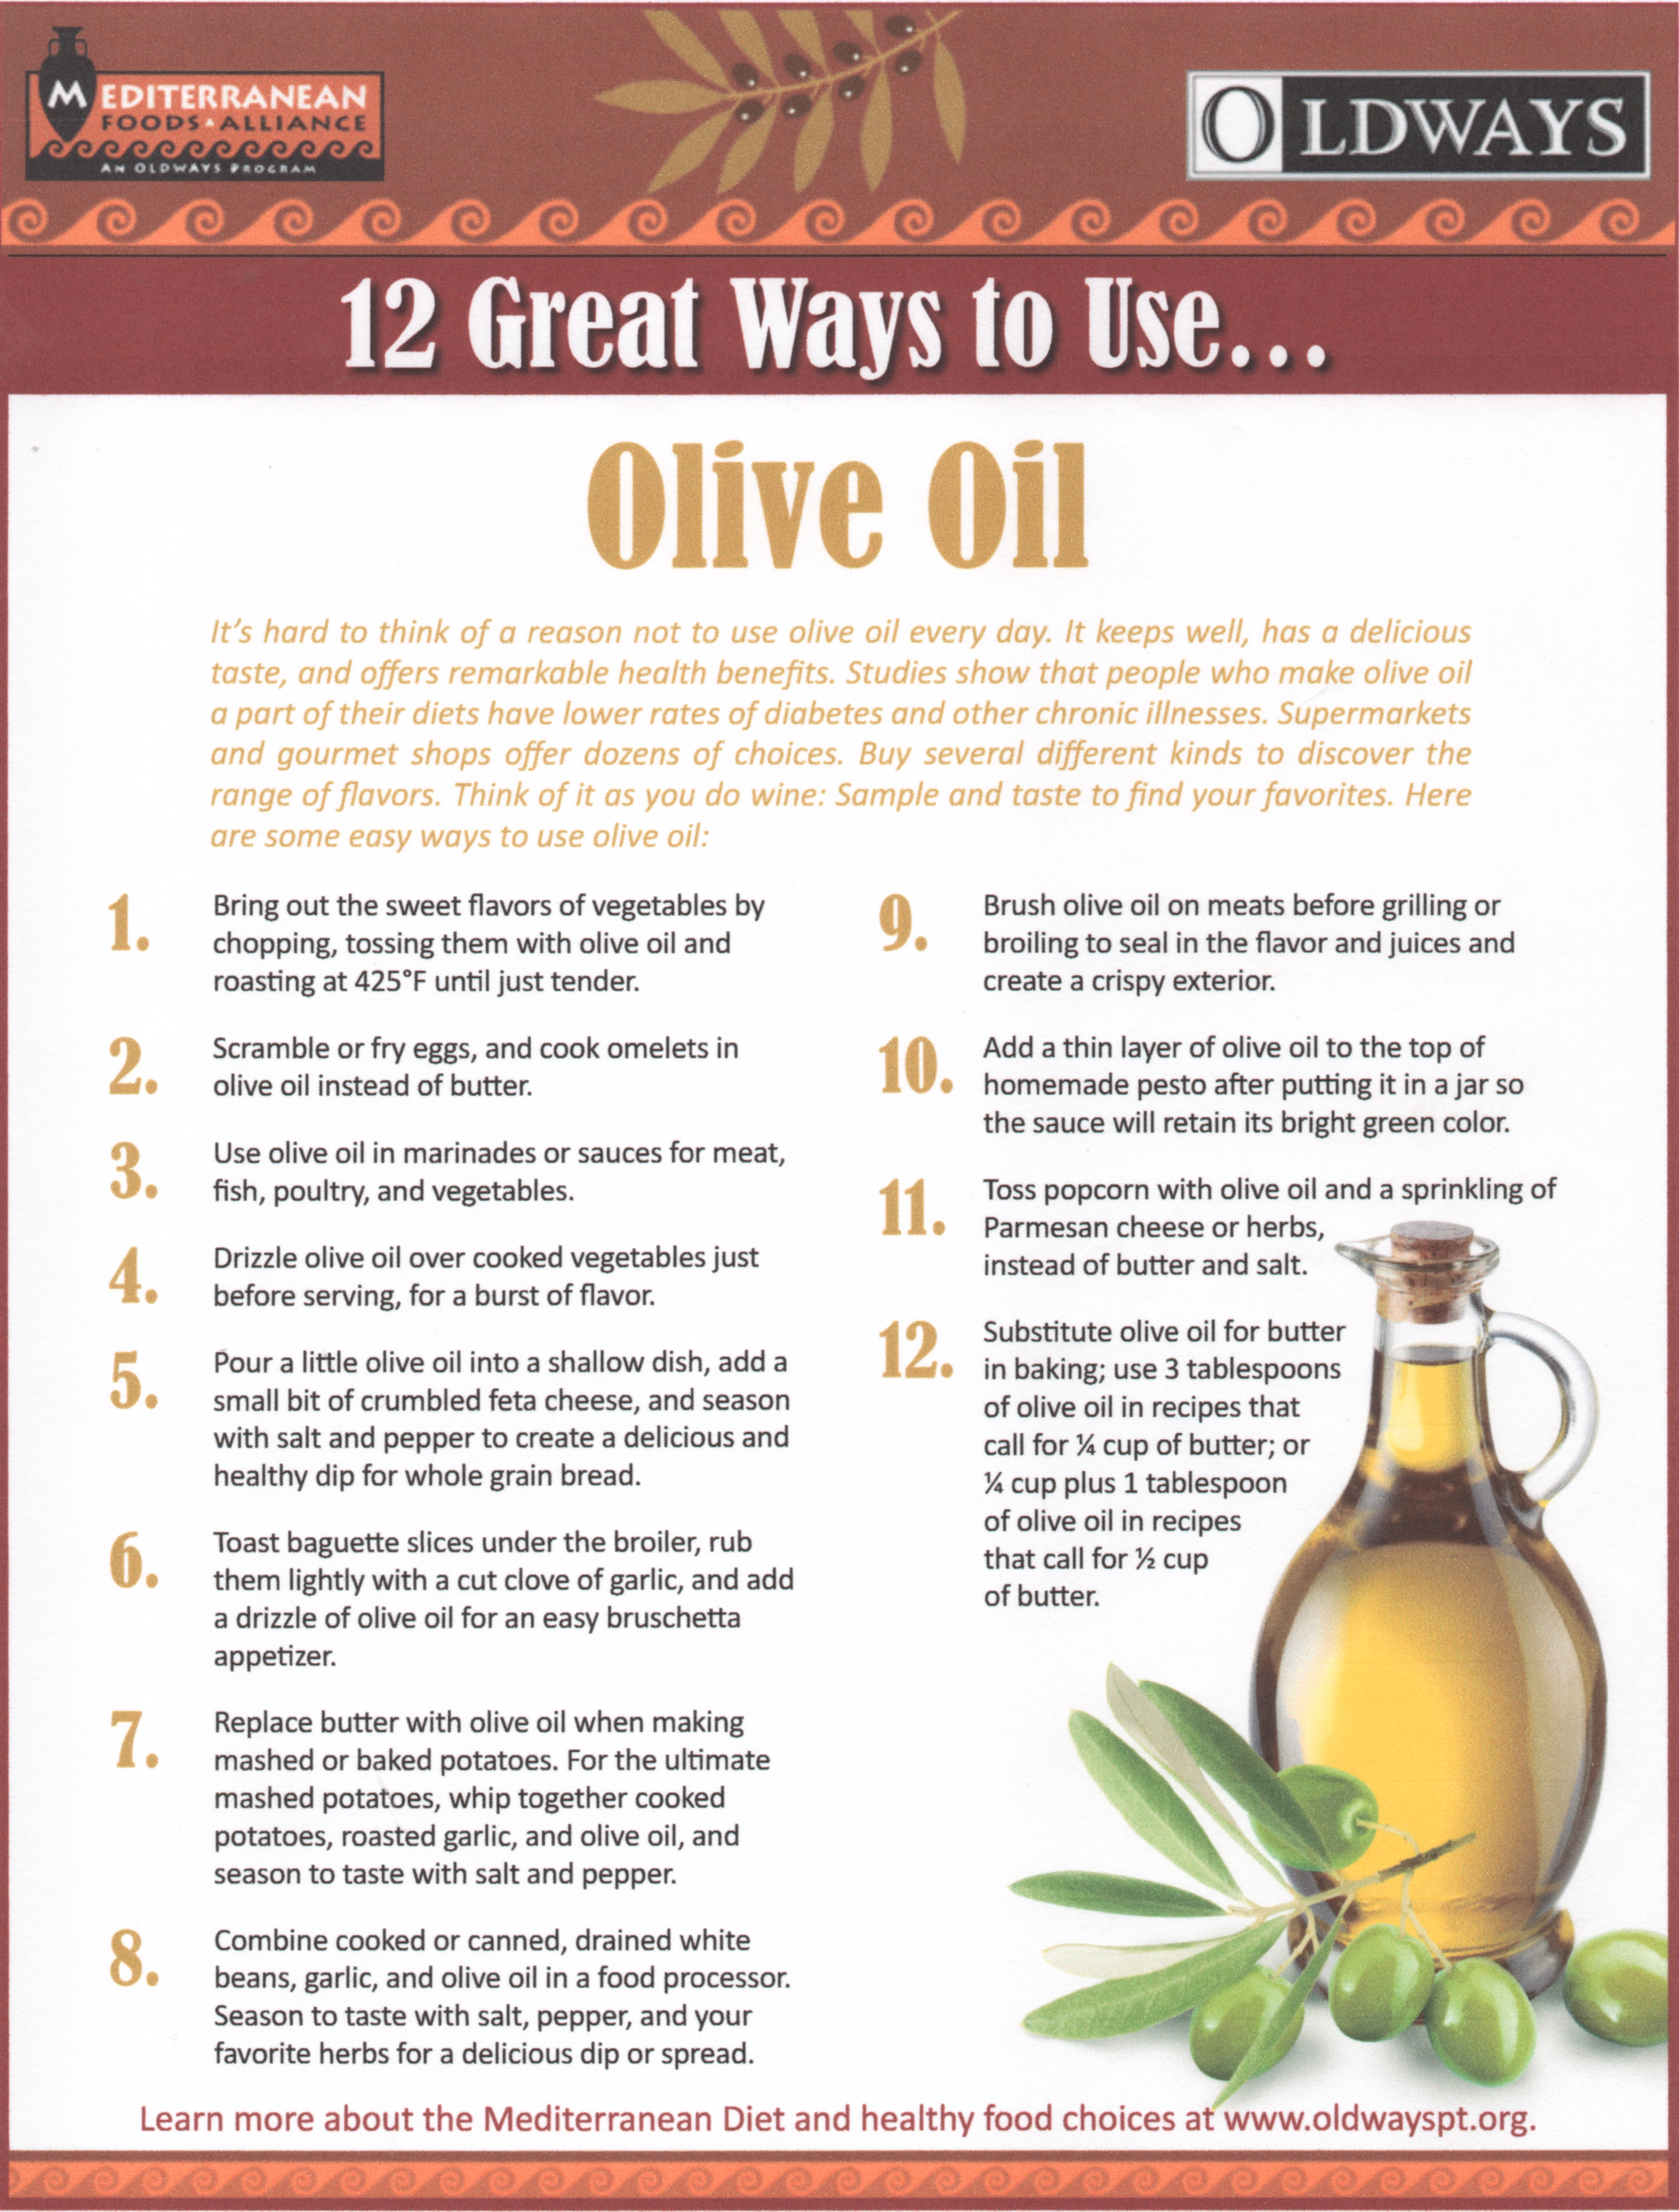 12 great ways to use olive oil - dell'orto extra virgin